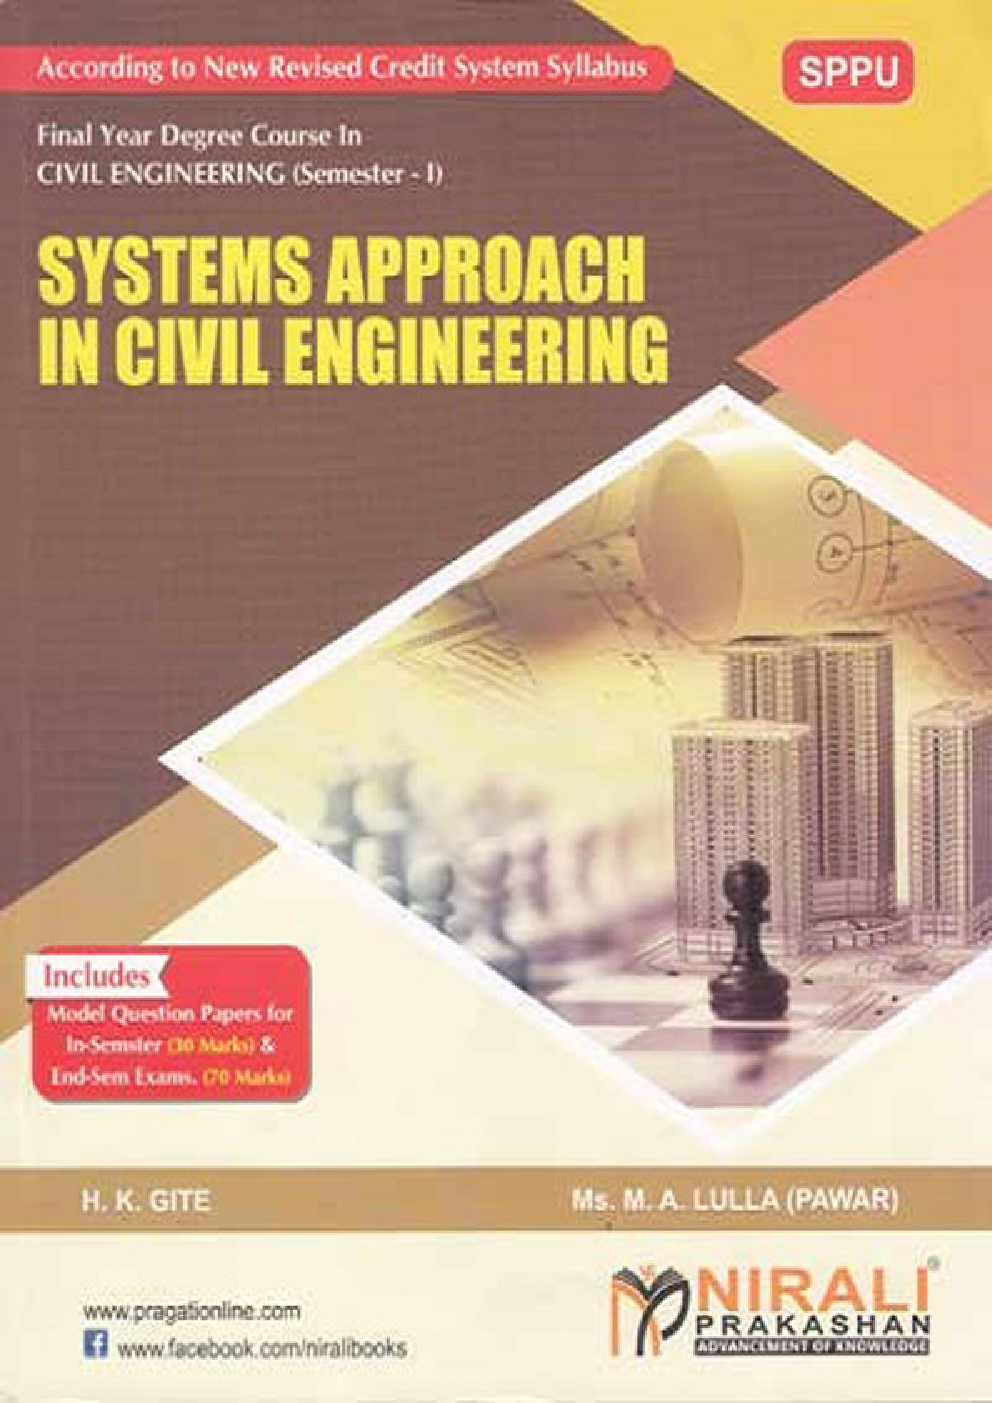 Systems Approach In Civil Engineering - Page 1